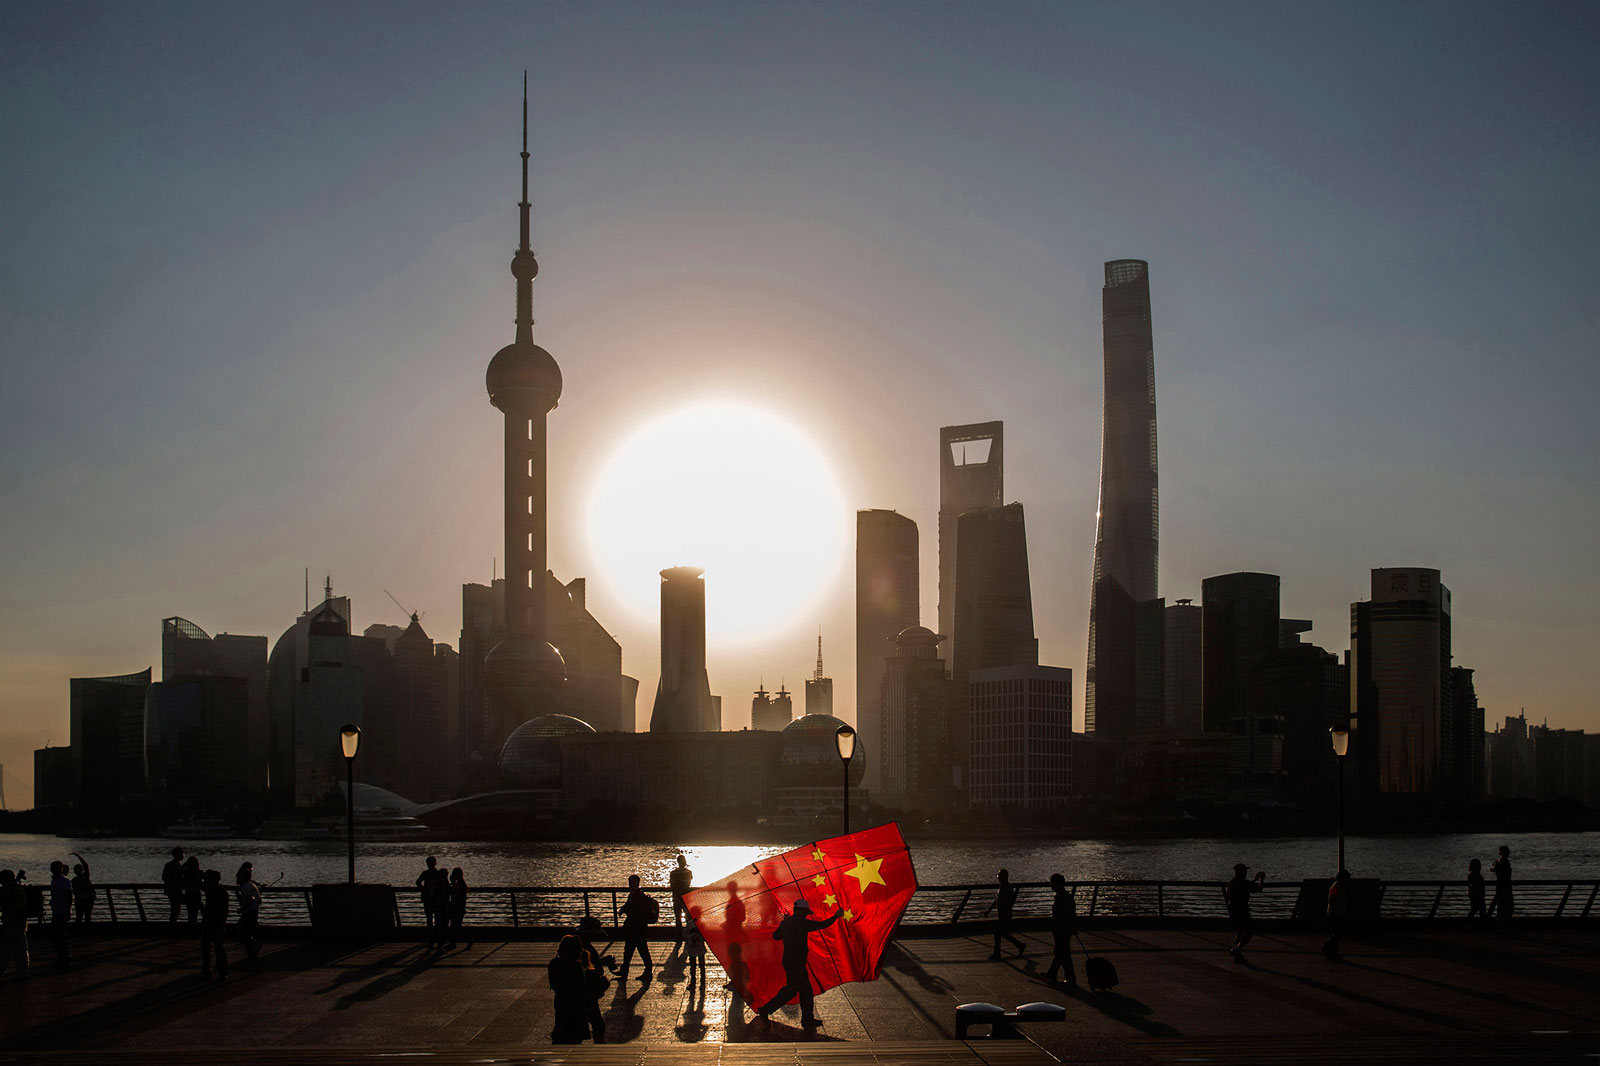 A man carrying a Chinese national flag kite walks along the Bund in Shanghai